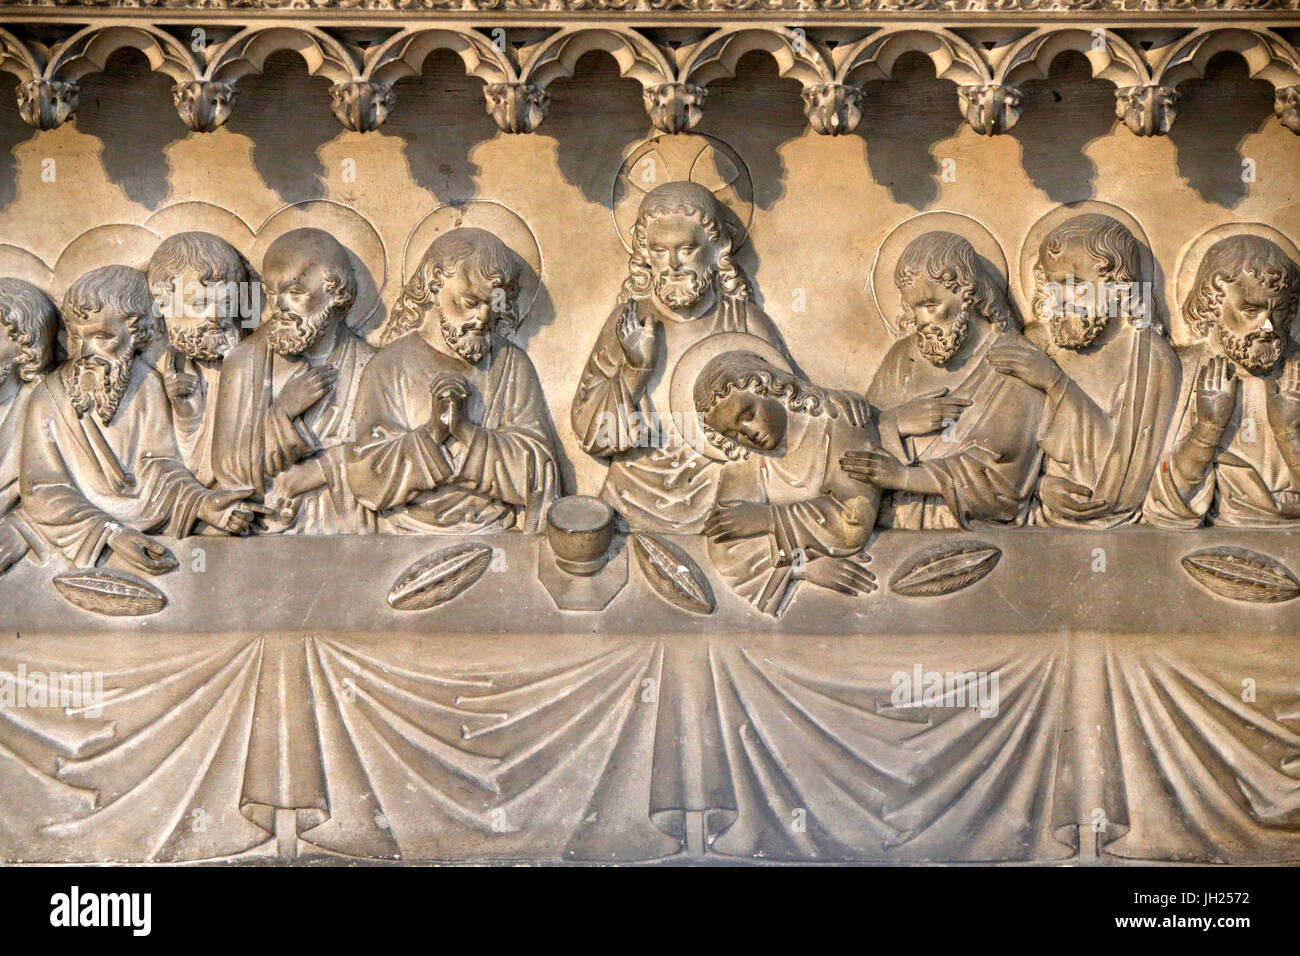 Notre-Dame cathedral, Rouen. Last Supper relief. France. - Stock Image